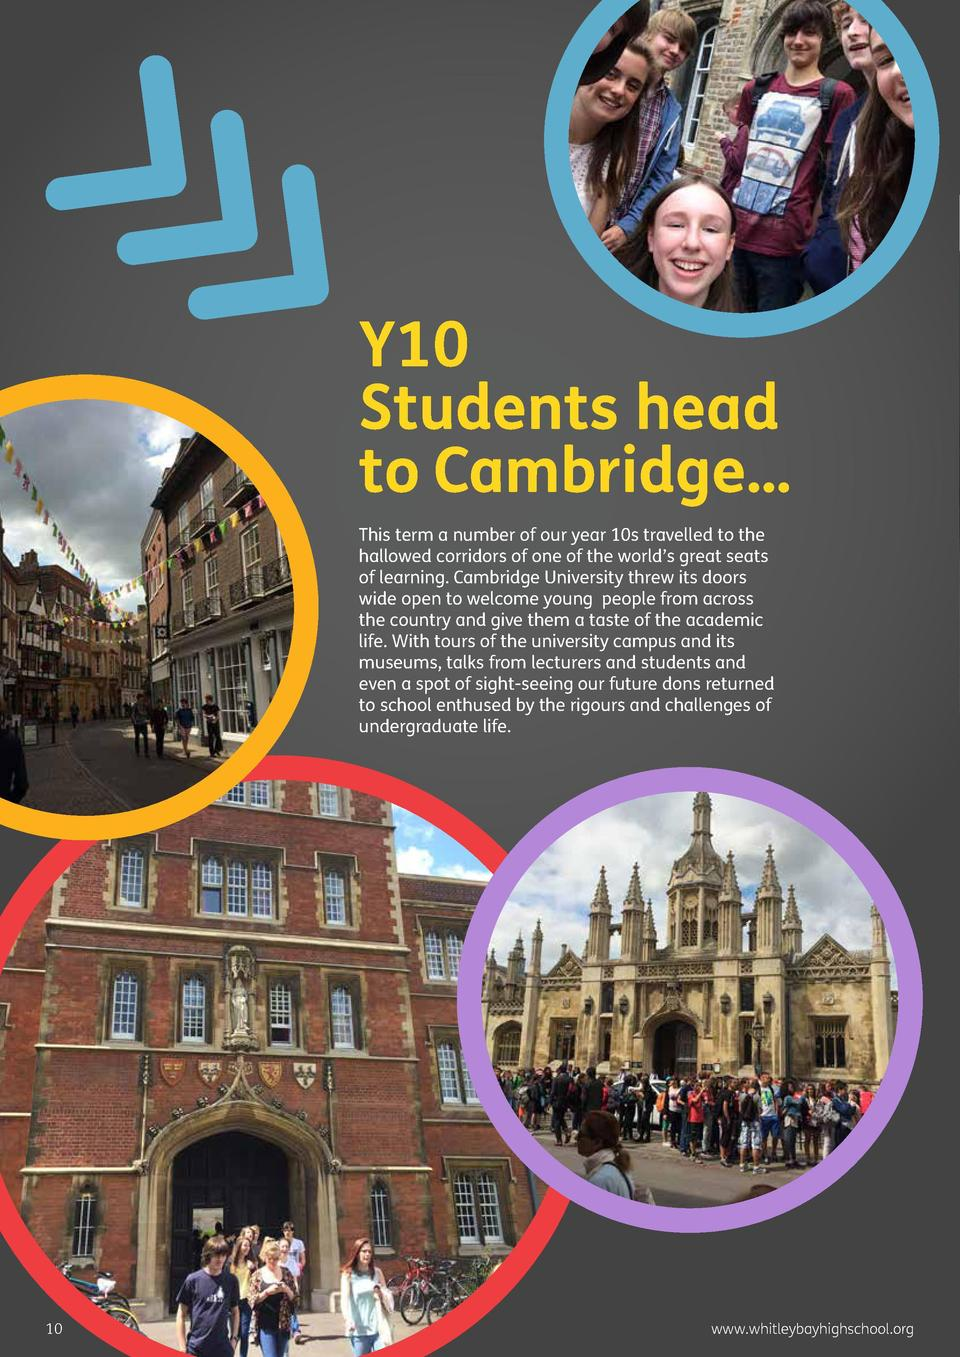 Y10 Students head to Cambridge    This term a number of our year 10s travelled to the hallowed corridors of one of the wor...